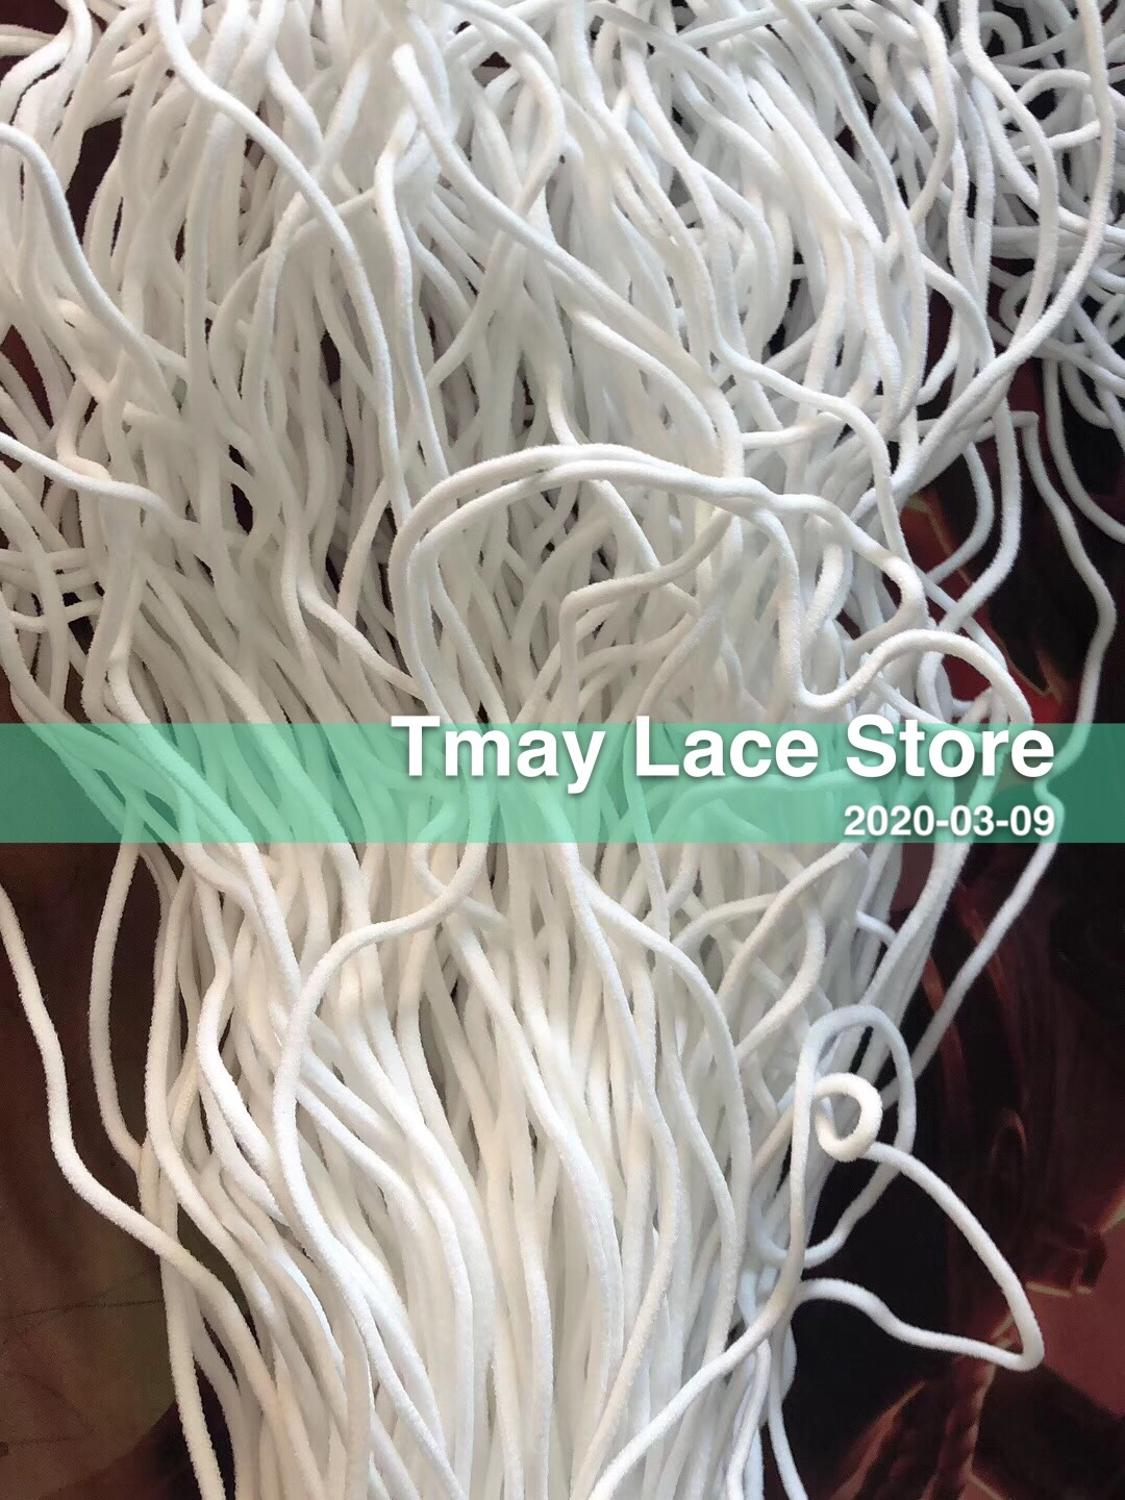 Mask Elastic Bands Mask Rope Rubber Band Tape Ear Hanging Rope Round Elastic Band DIY Clothing Craft Accessories